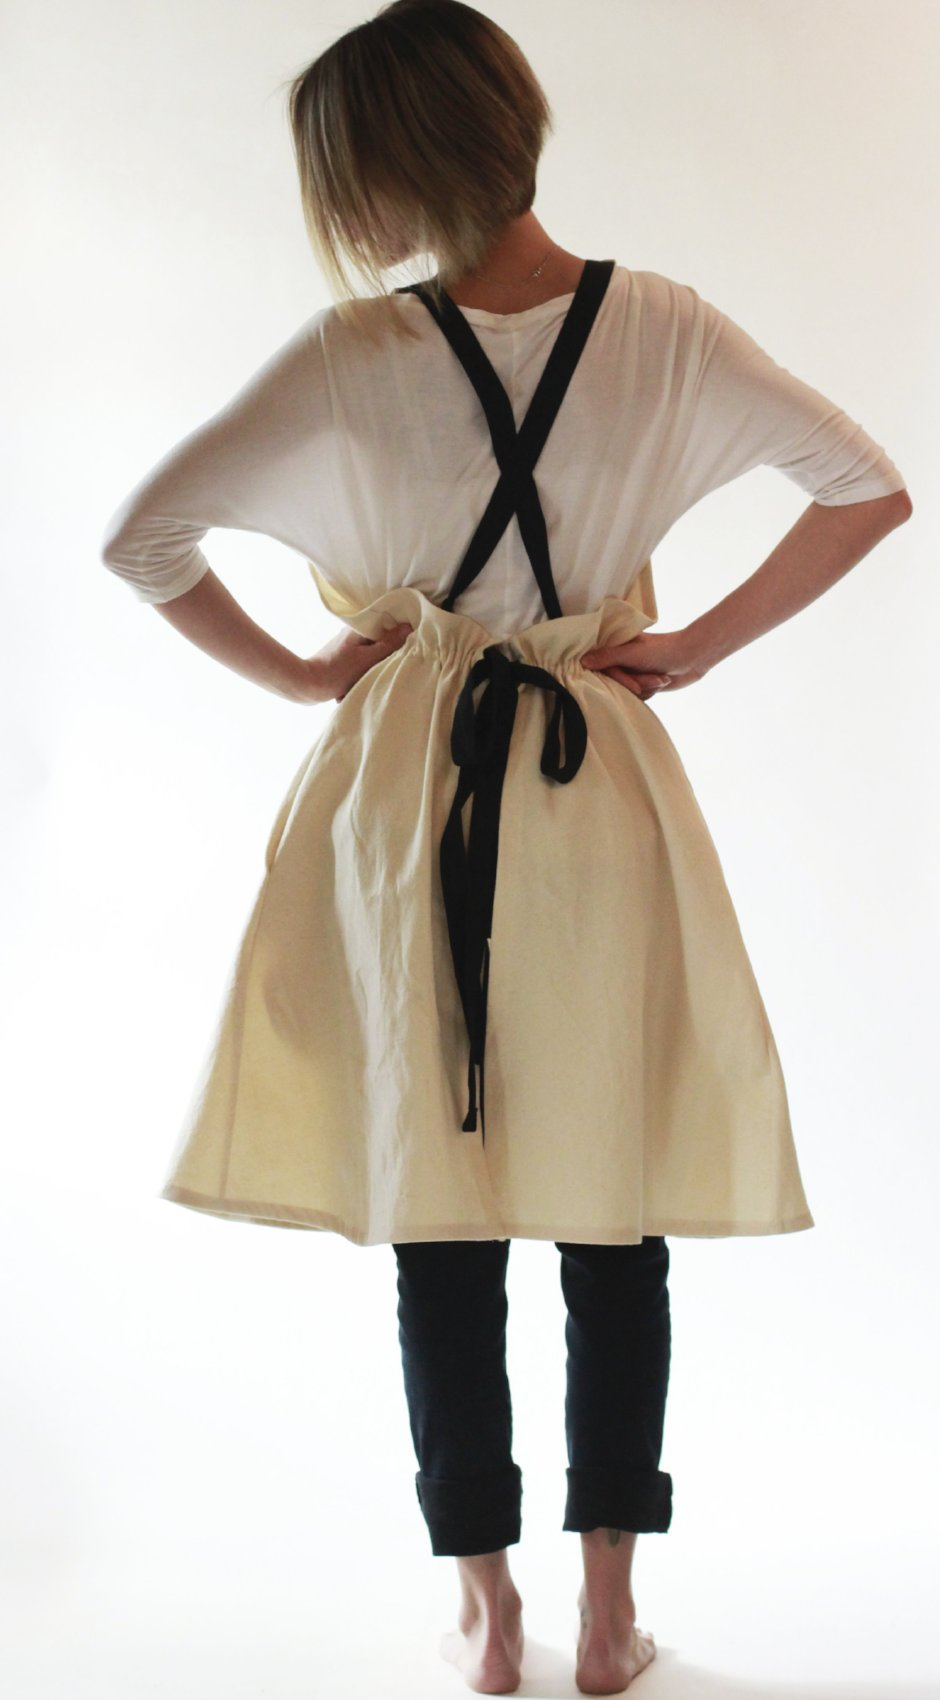 XS-5X A-Line Crossback Apron in Plain Canvas